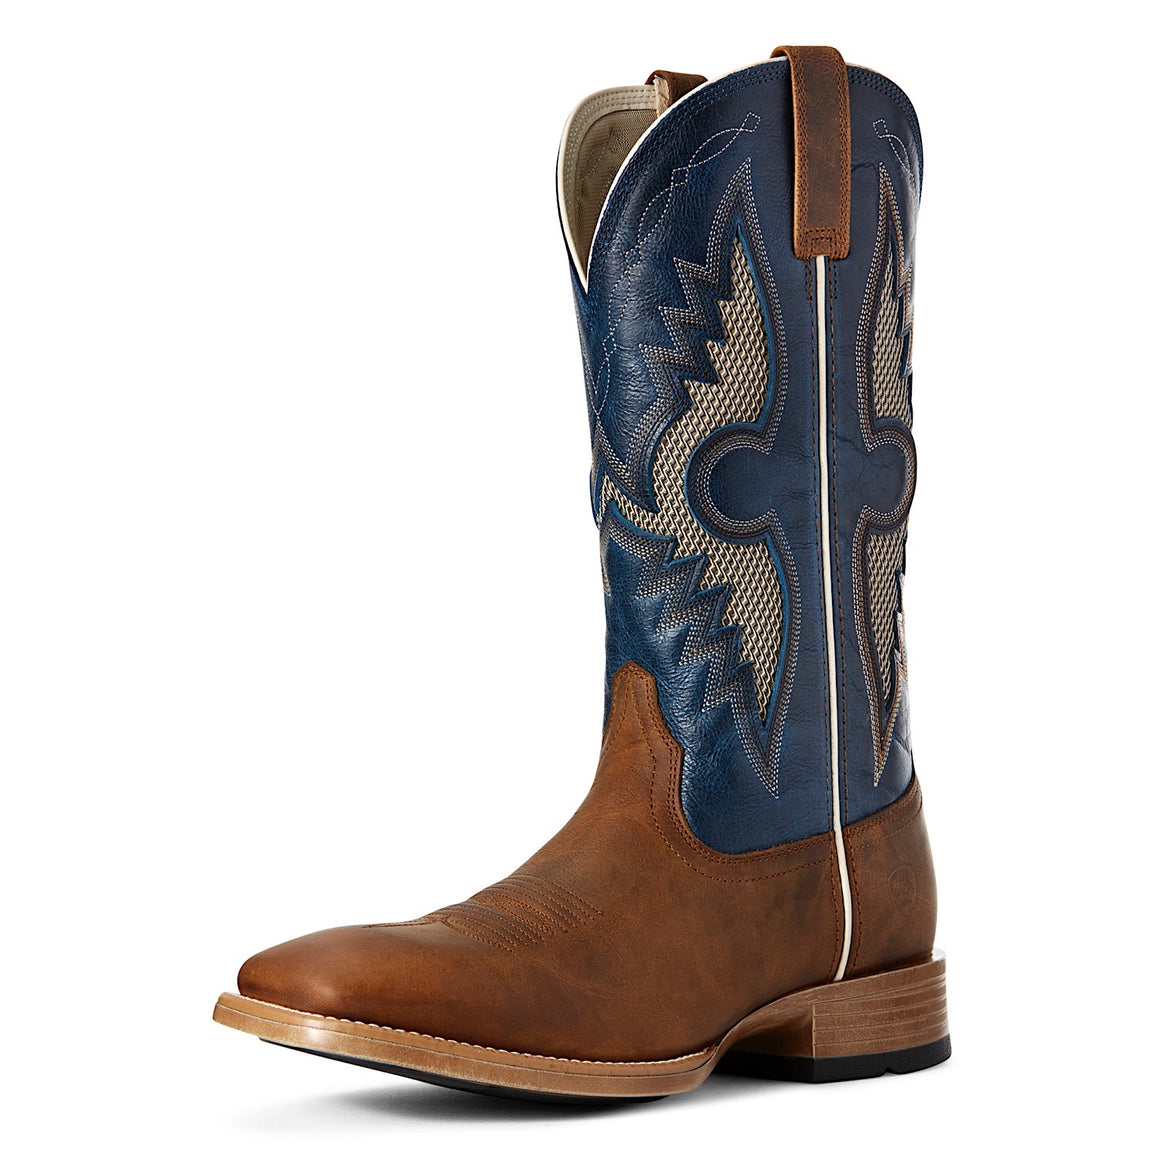 93350aab070 Buy Ariat Men's Western Boots - Men's Heritage Ropers & More - The ...